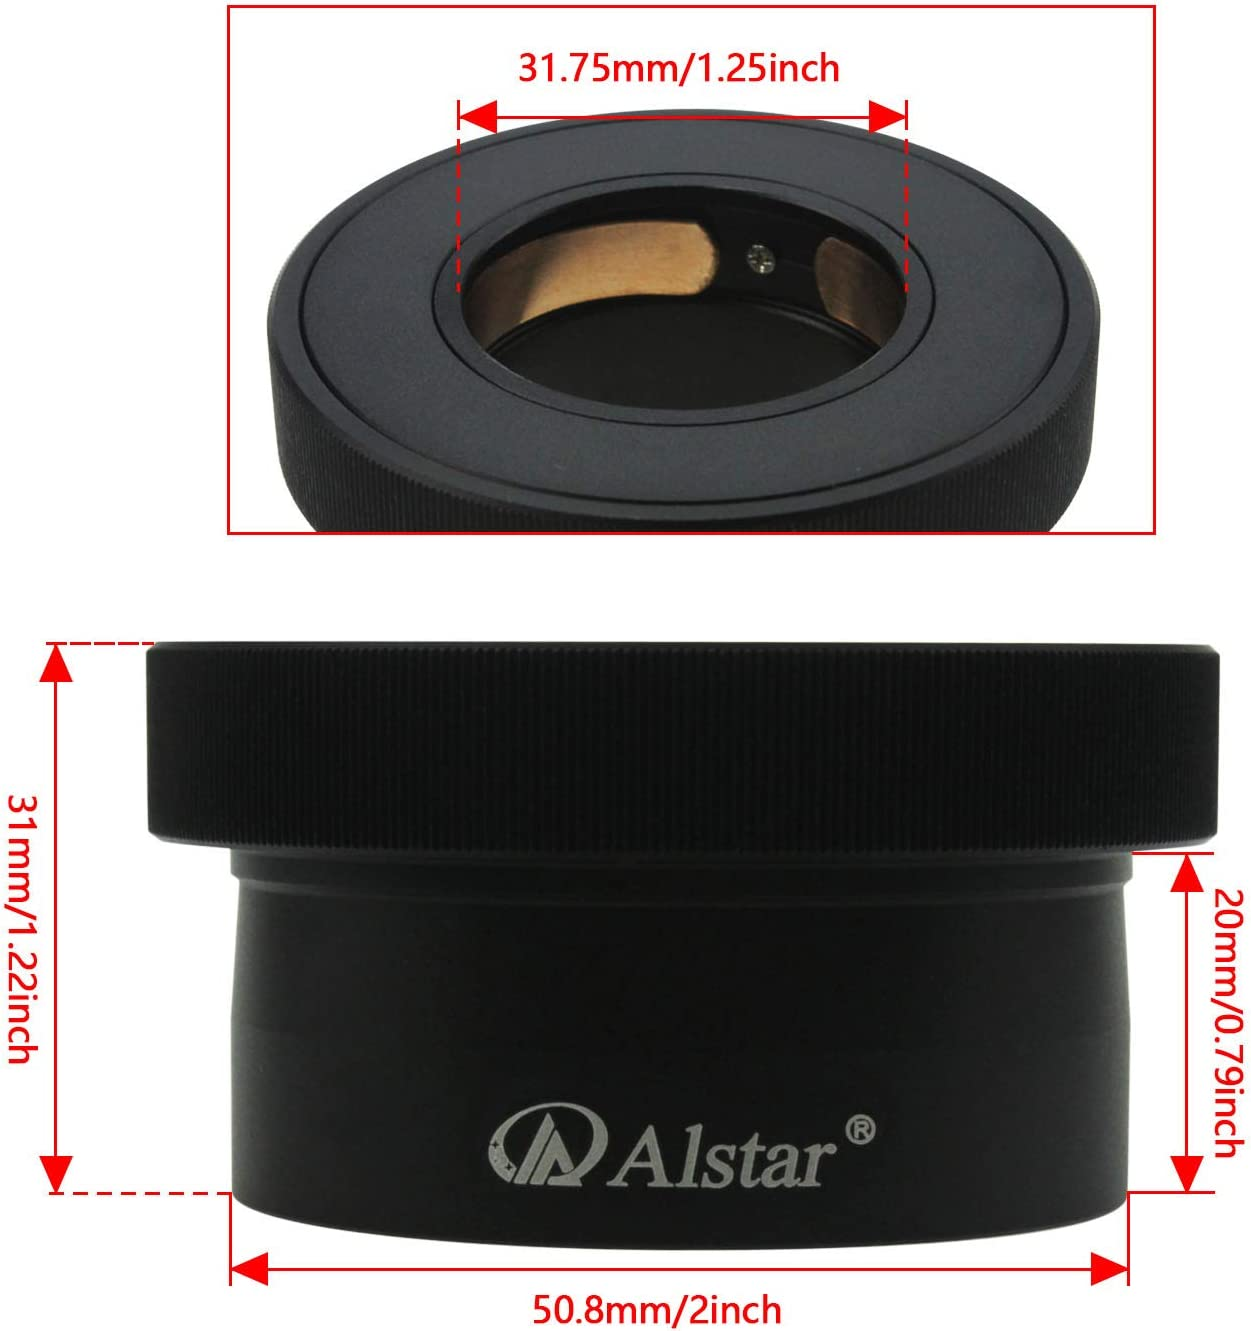 2 Twist-Lock Adapter Firmly and Gently Holds and centres Your eyepieces Alstar 1.25